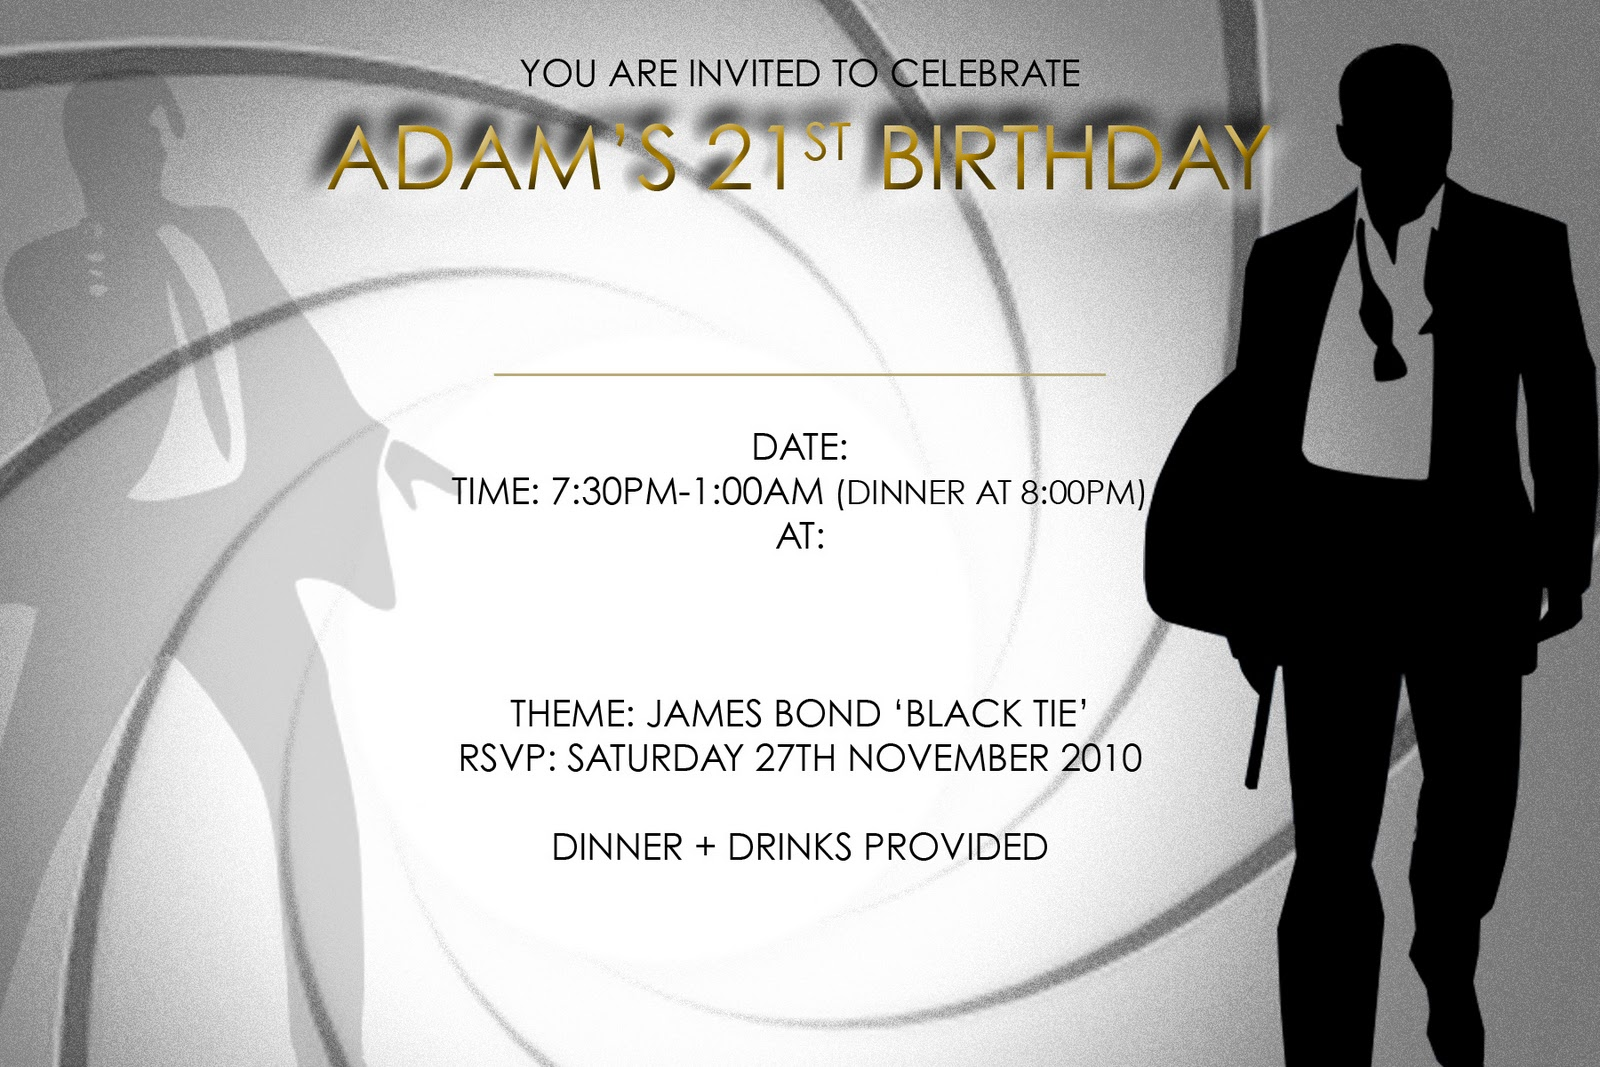 21st birthday invitation templates photoshop ; 21st_birthday_invitations_4